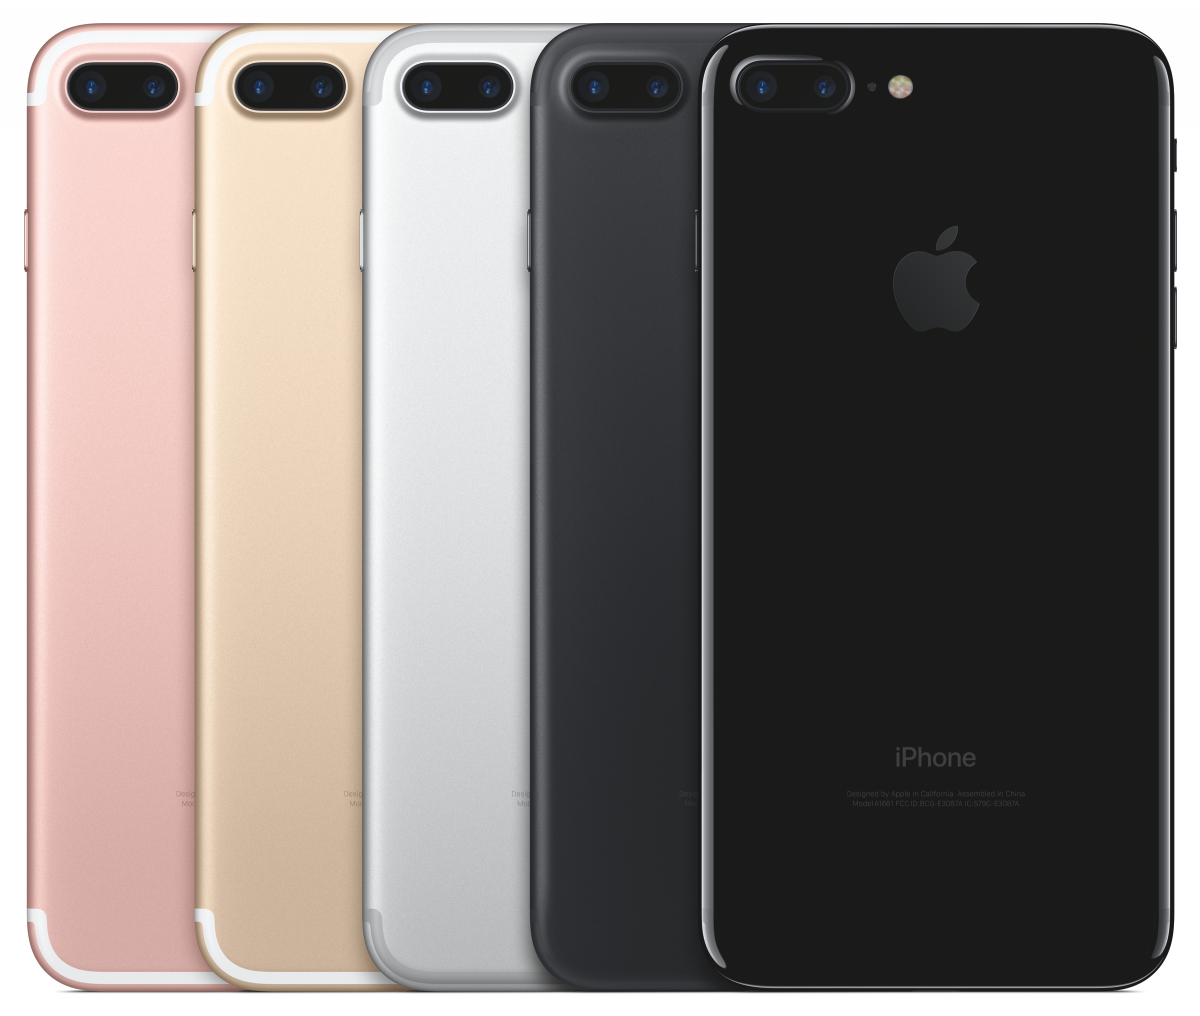 Available in 5 colors, the iPhone 7 + 7S are available for pre-order on Sept. 9!